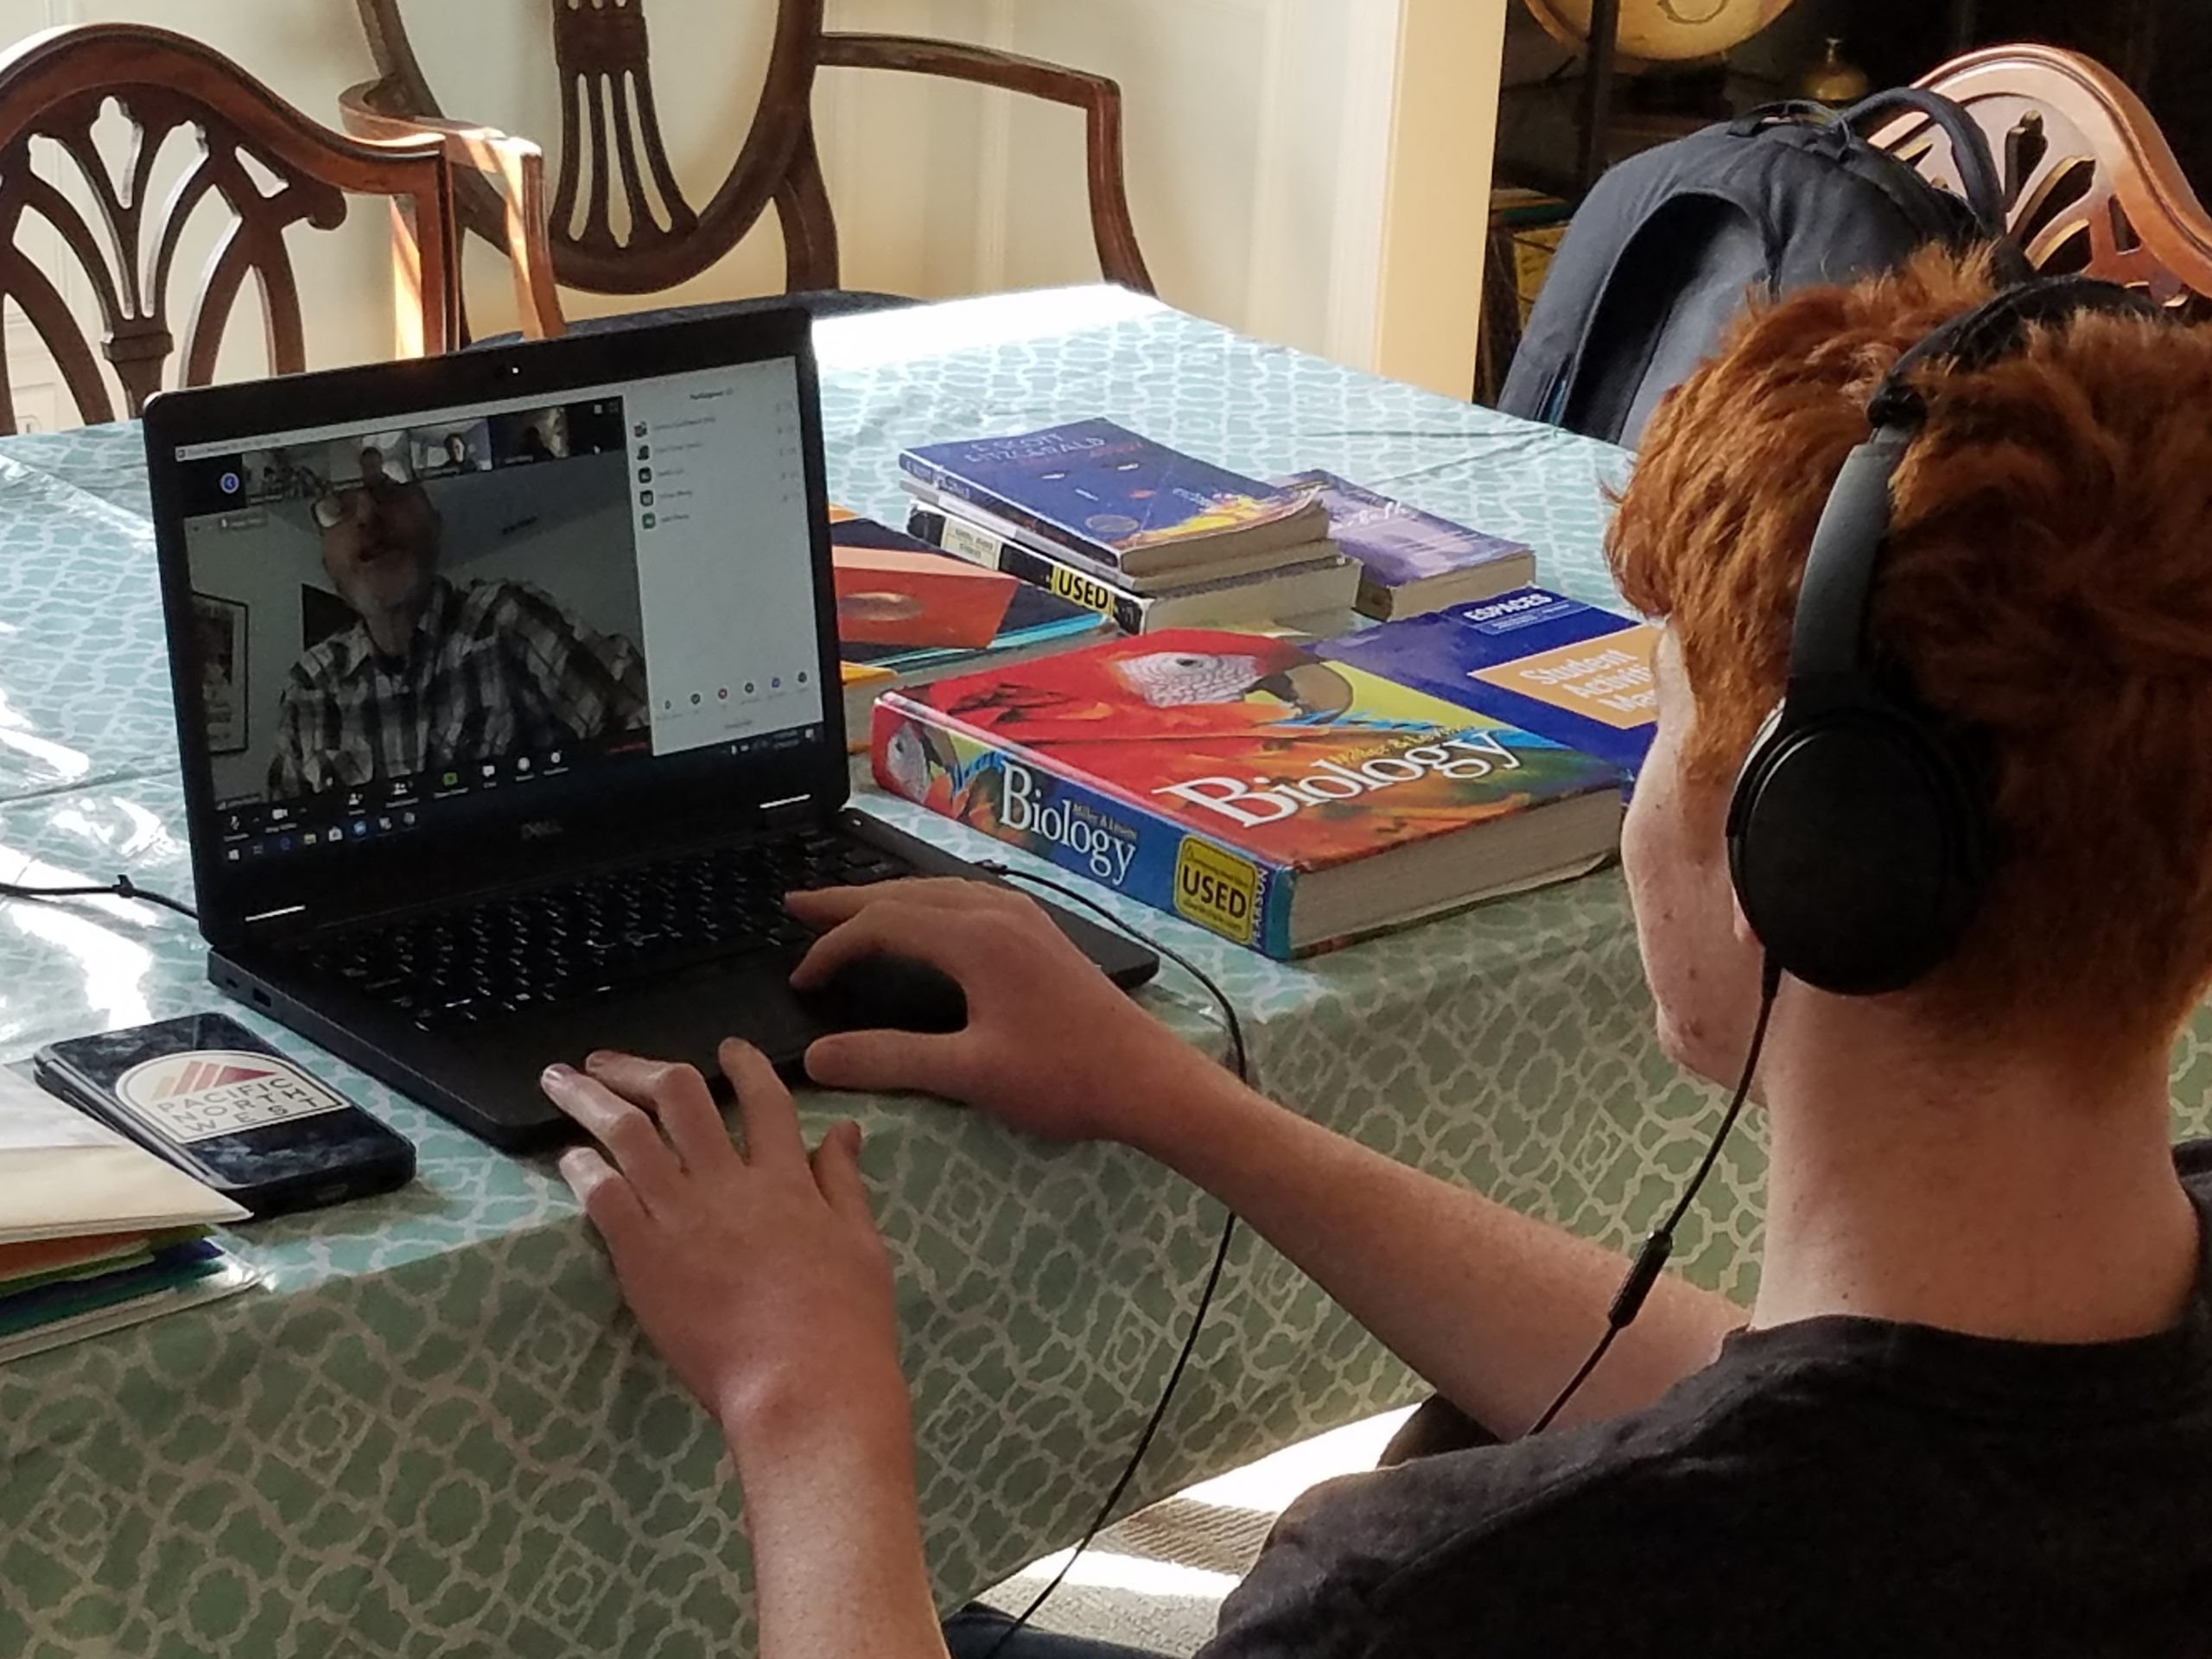 Upper School student Connor S. '23 at work during remote learning